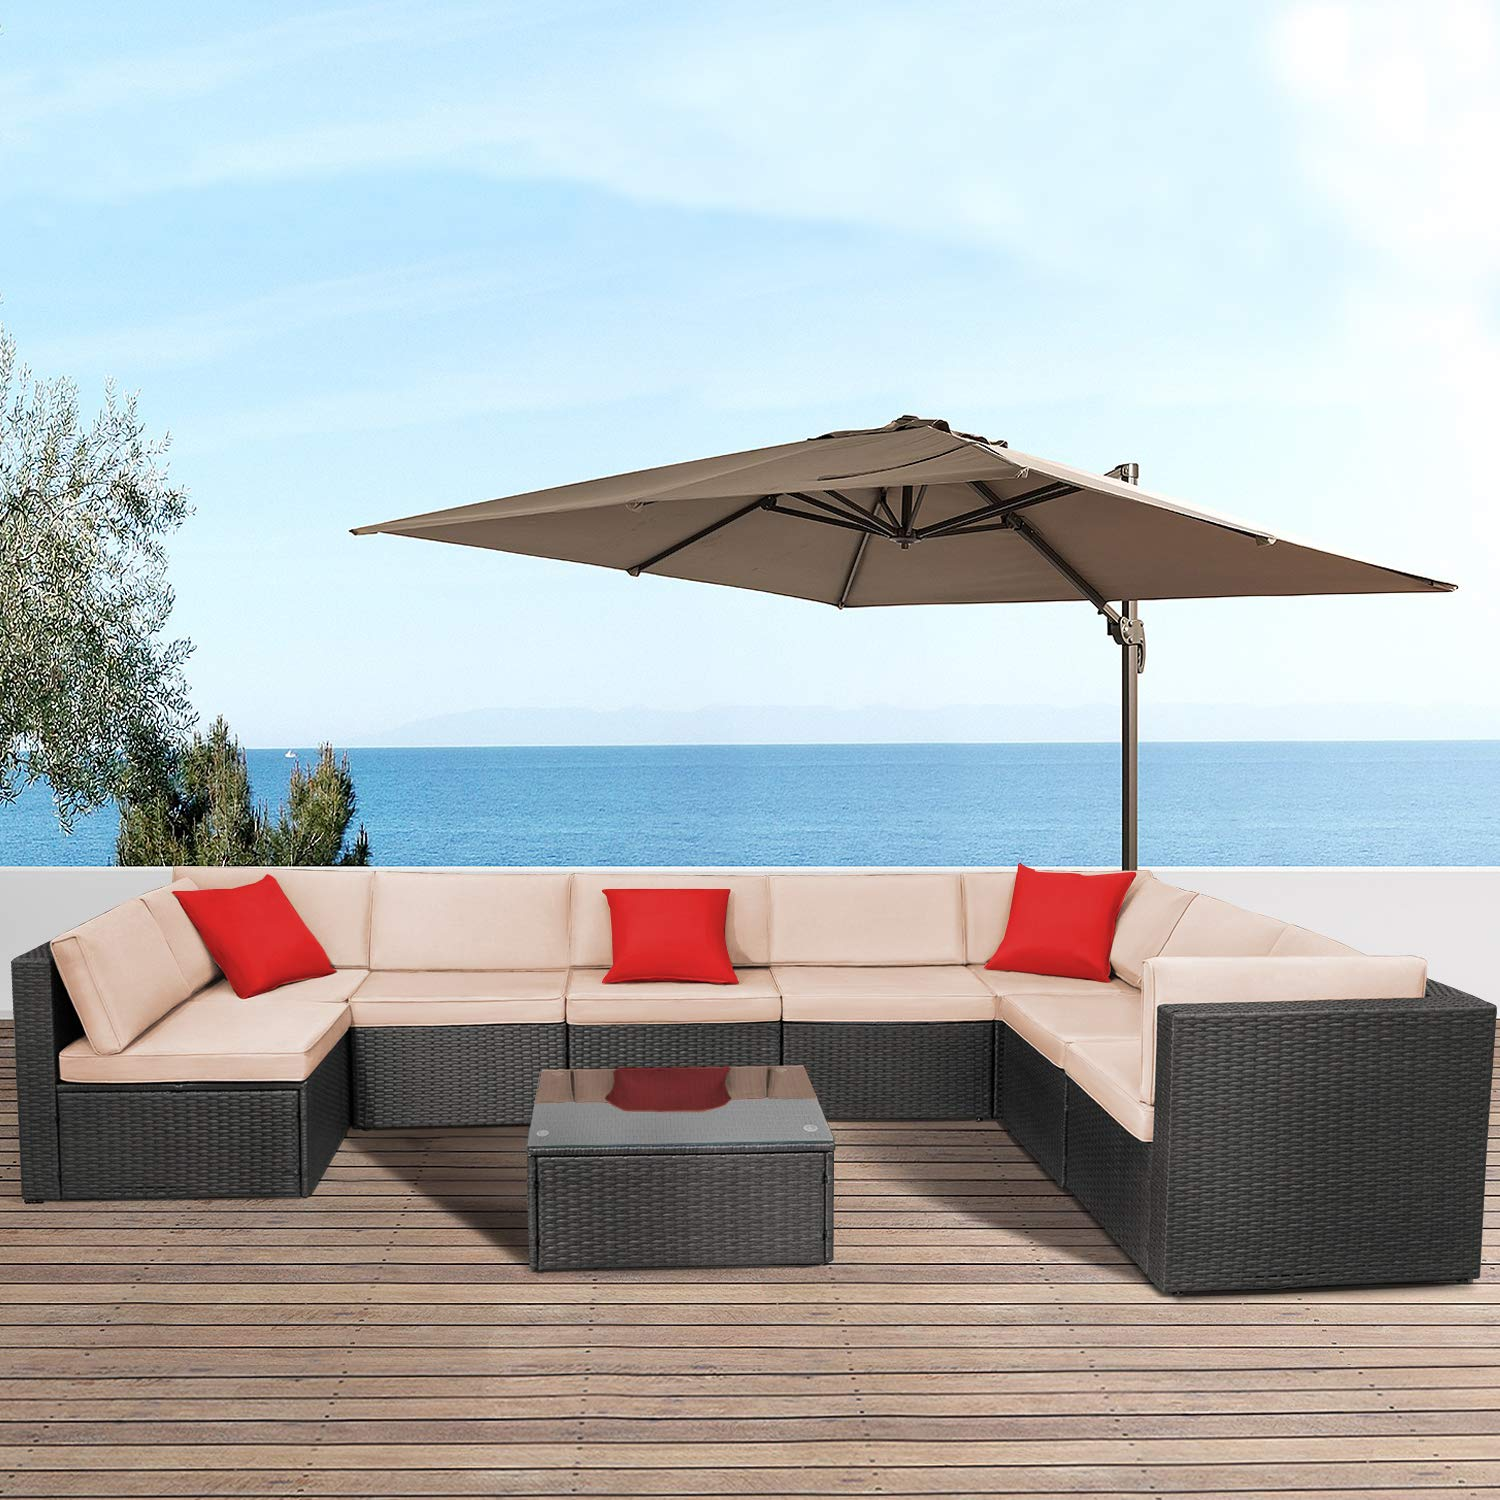 Devoko 9 Pieces Outdoor Patio Sectional Sofa All-Weather Patio Furniture Sets Manual Weaving Wicker Rattan Patio Conversation Set with Cushions and Glass Table Brown